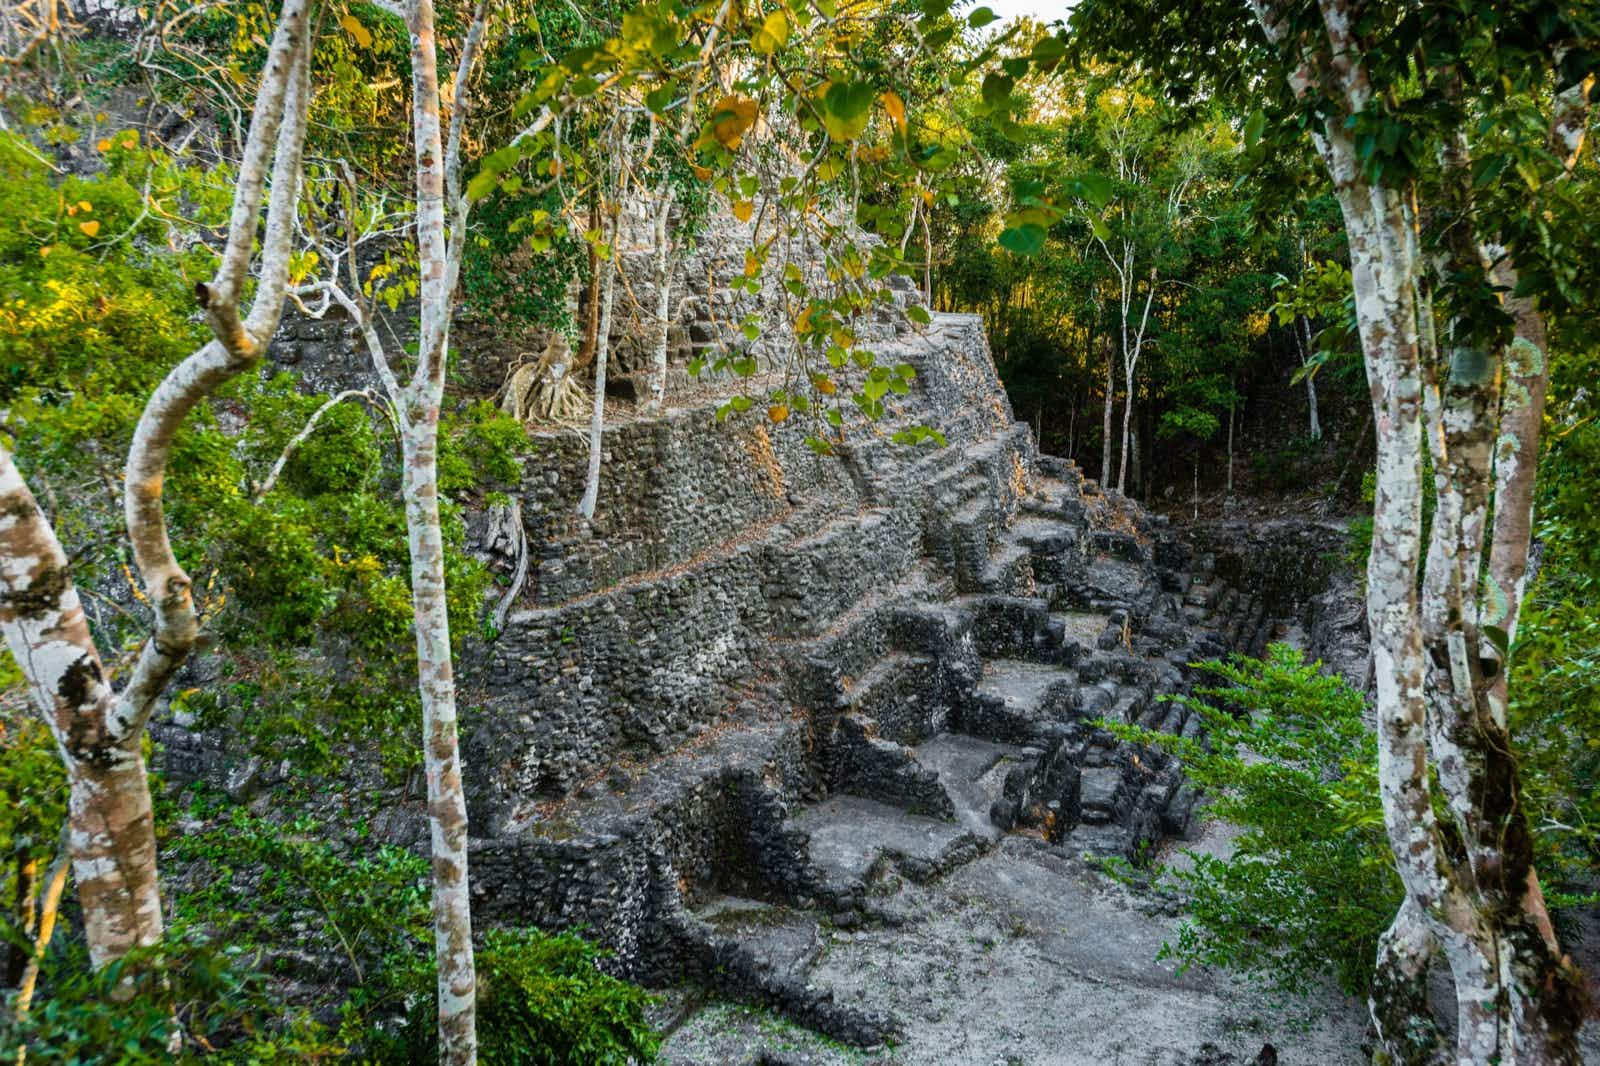 A side view highlighting the stones used to erect the La Danta pyramid at the El Mirador site in Guatemala David Ducoin/ Getty Images